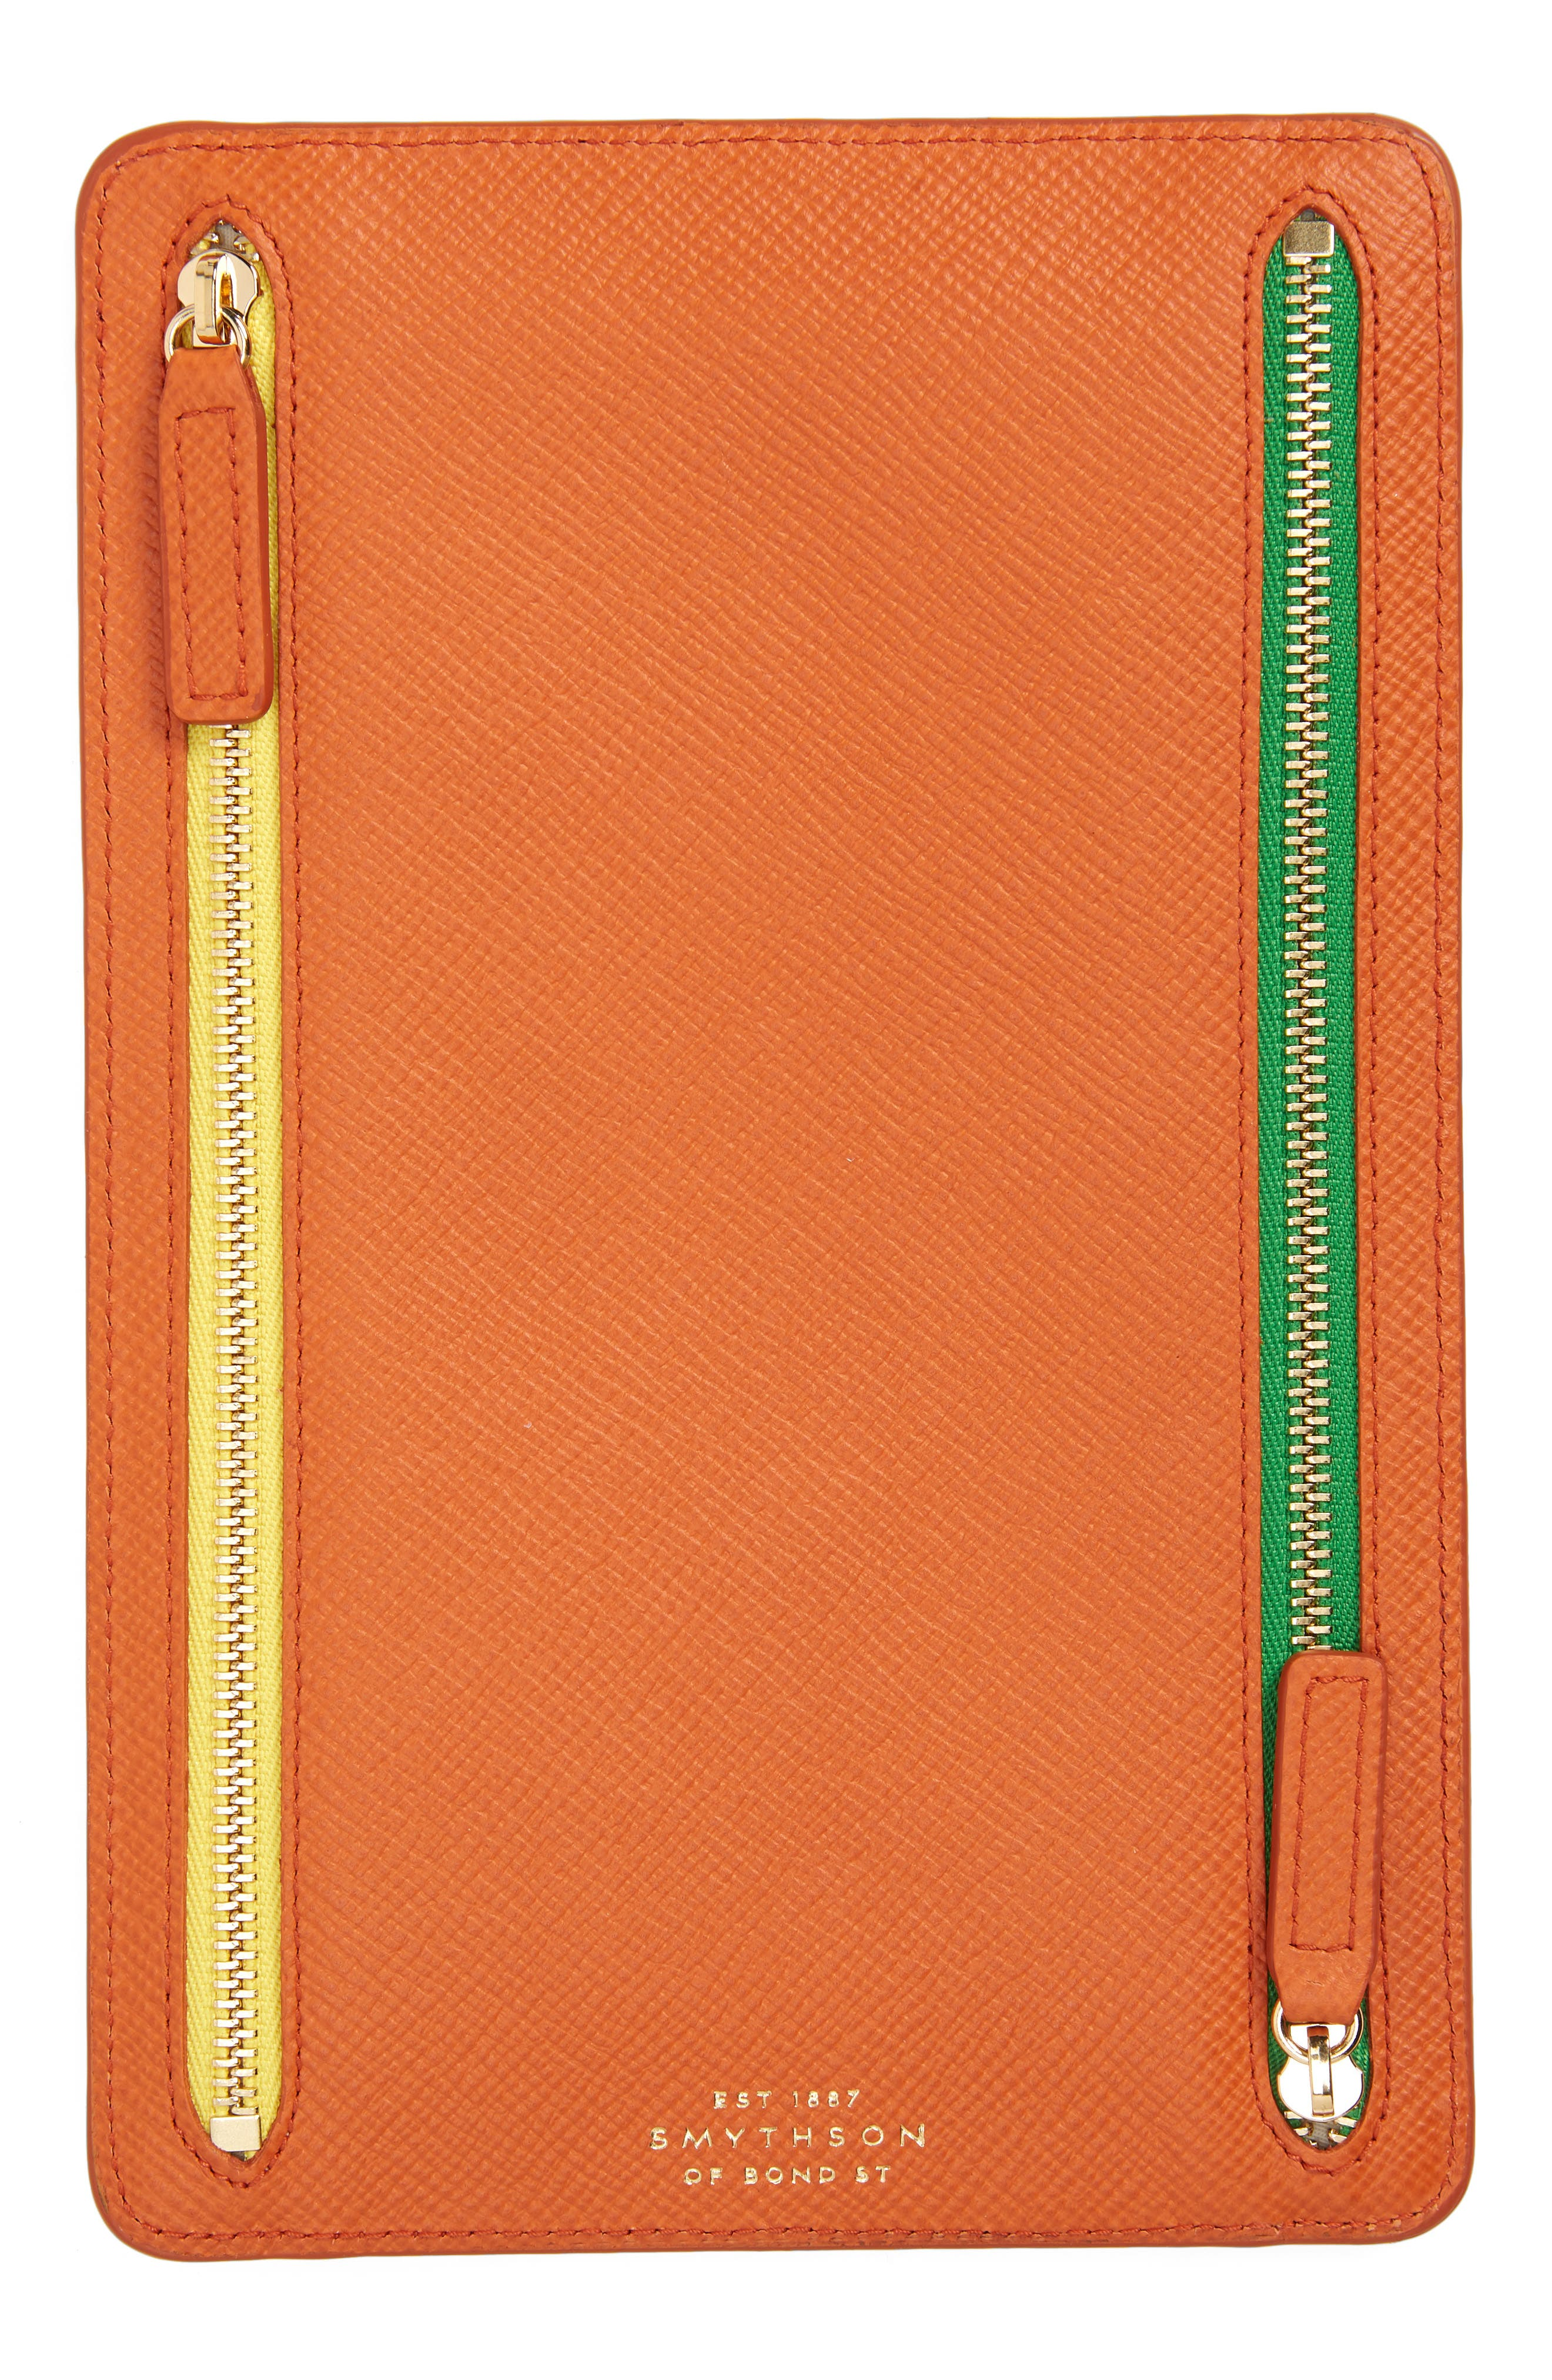 Panama Leather Currency Case,                         Main,                         color, Papaya